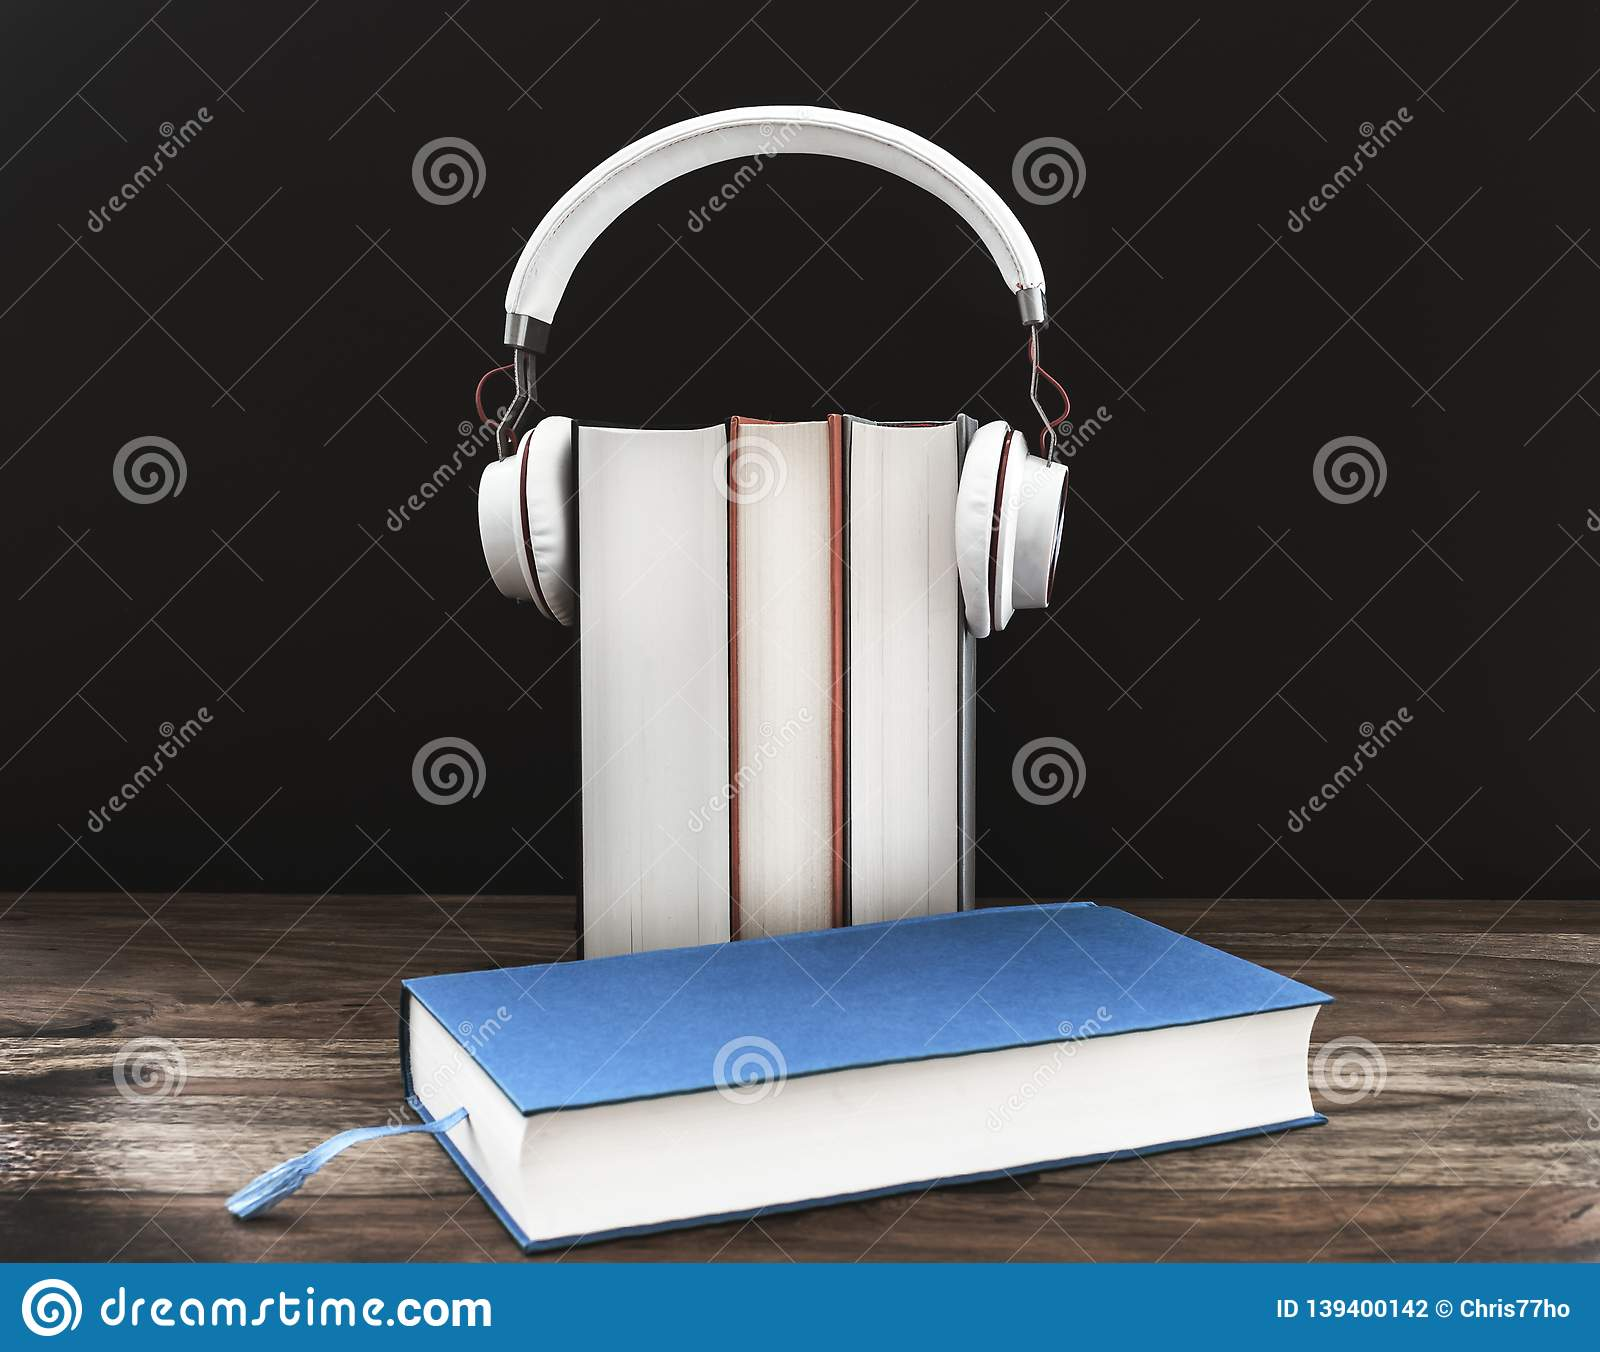 Audiobook concept with headphones on hardcover books against dark background